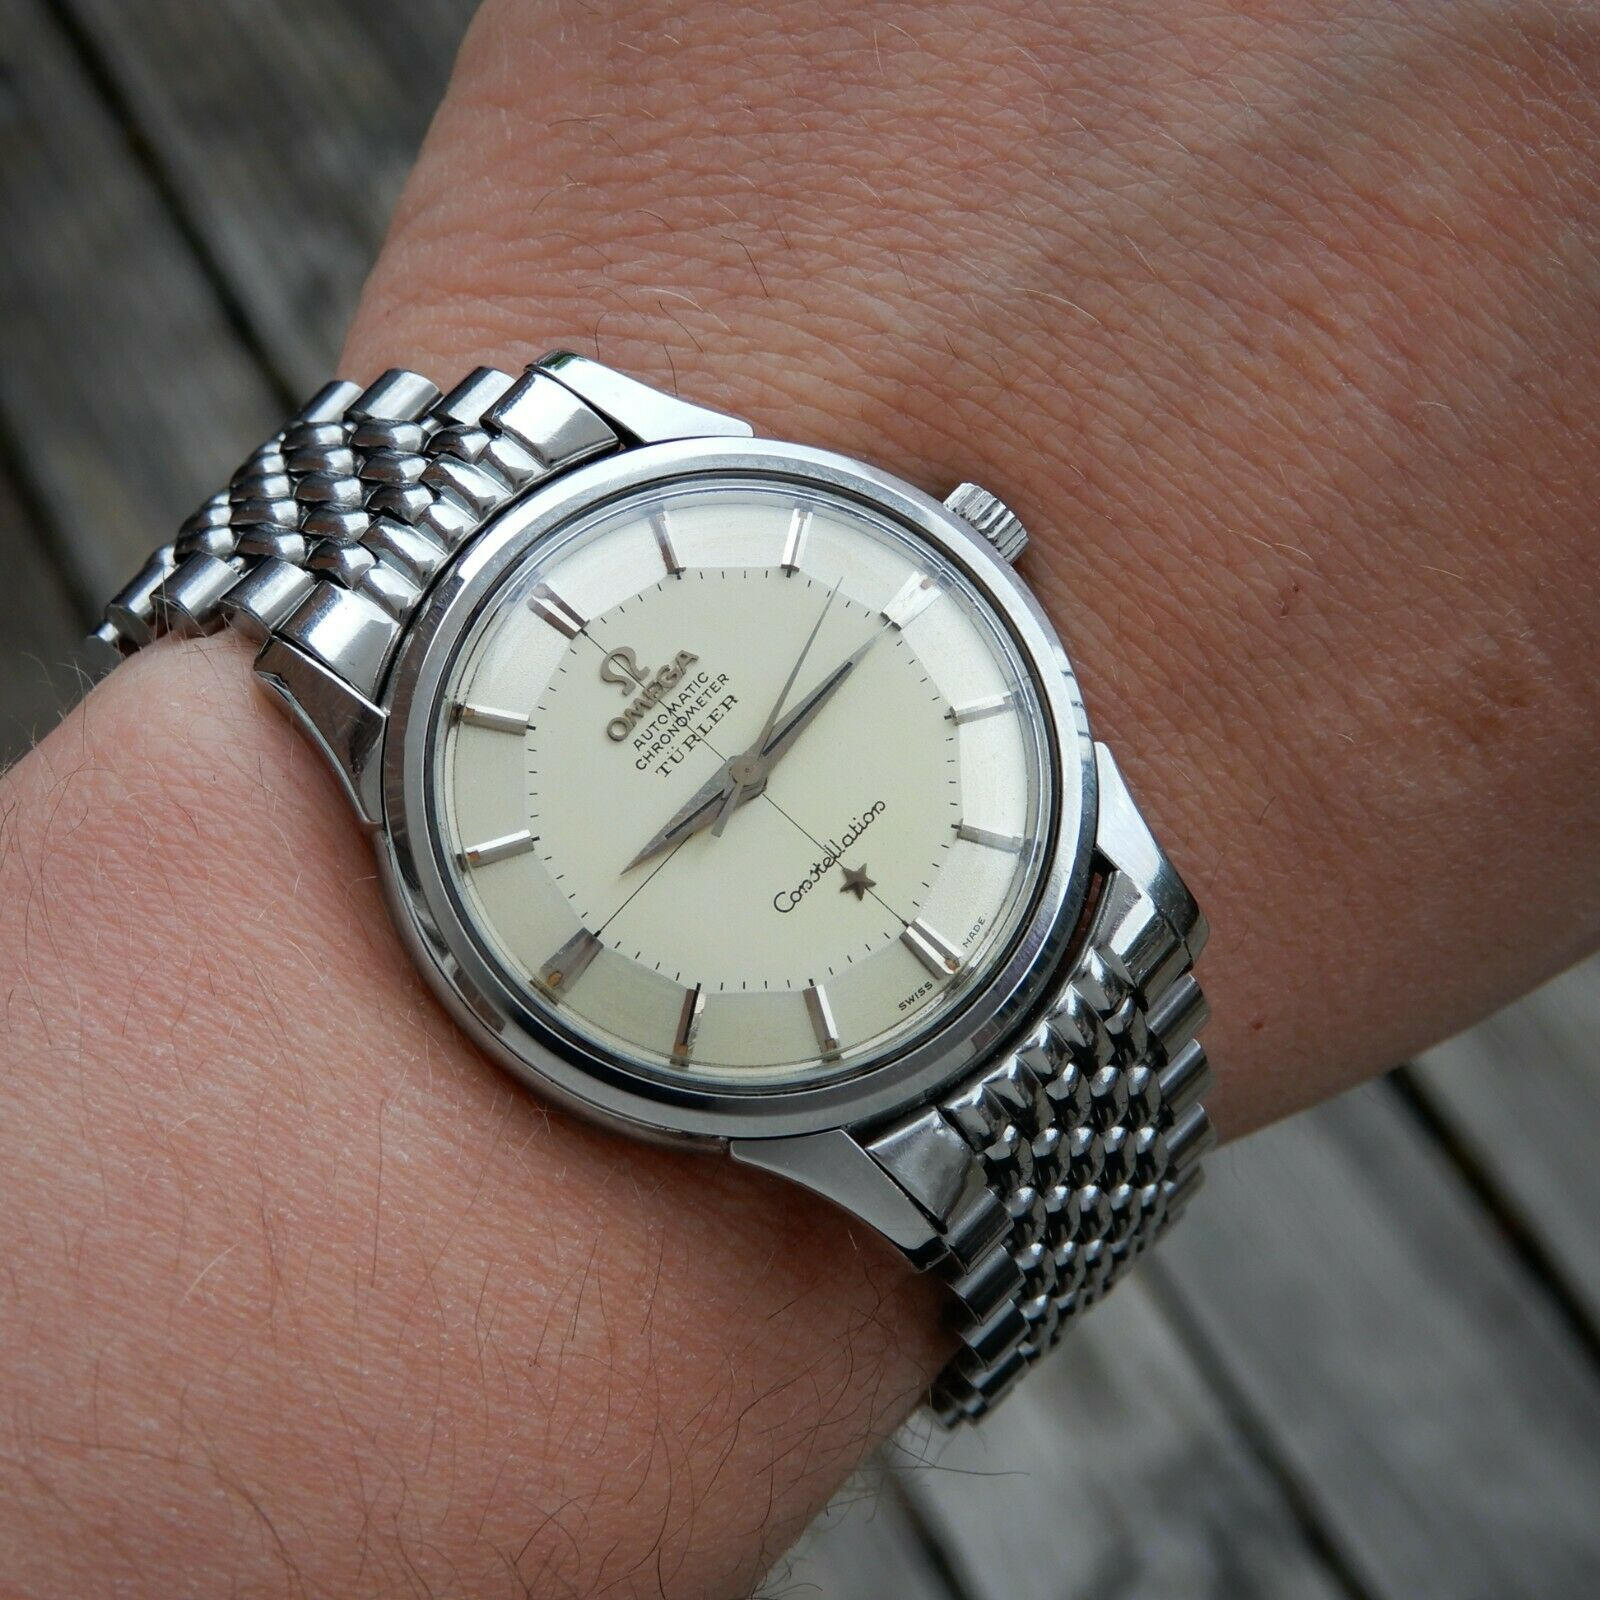 Omega TURLER Pie Pan Constellation Chronometer Cal 551 Ref 14381 Vintage 1959 - watch picture 1